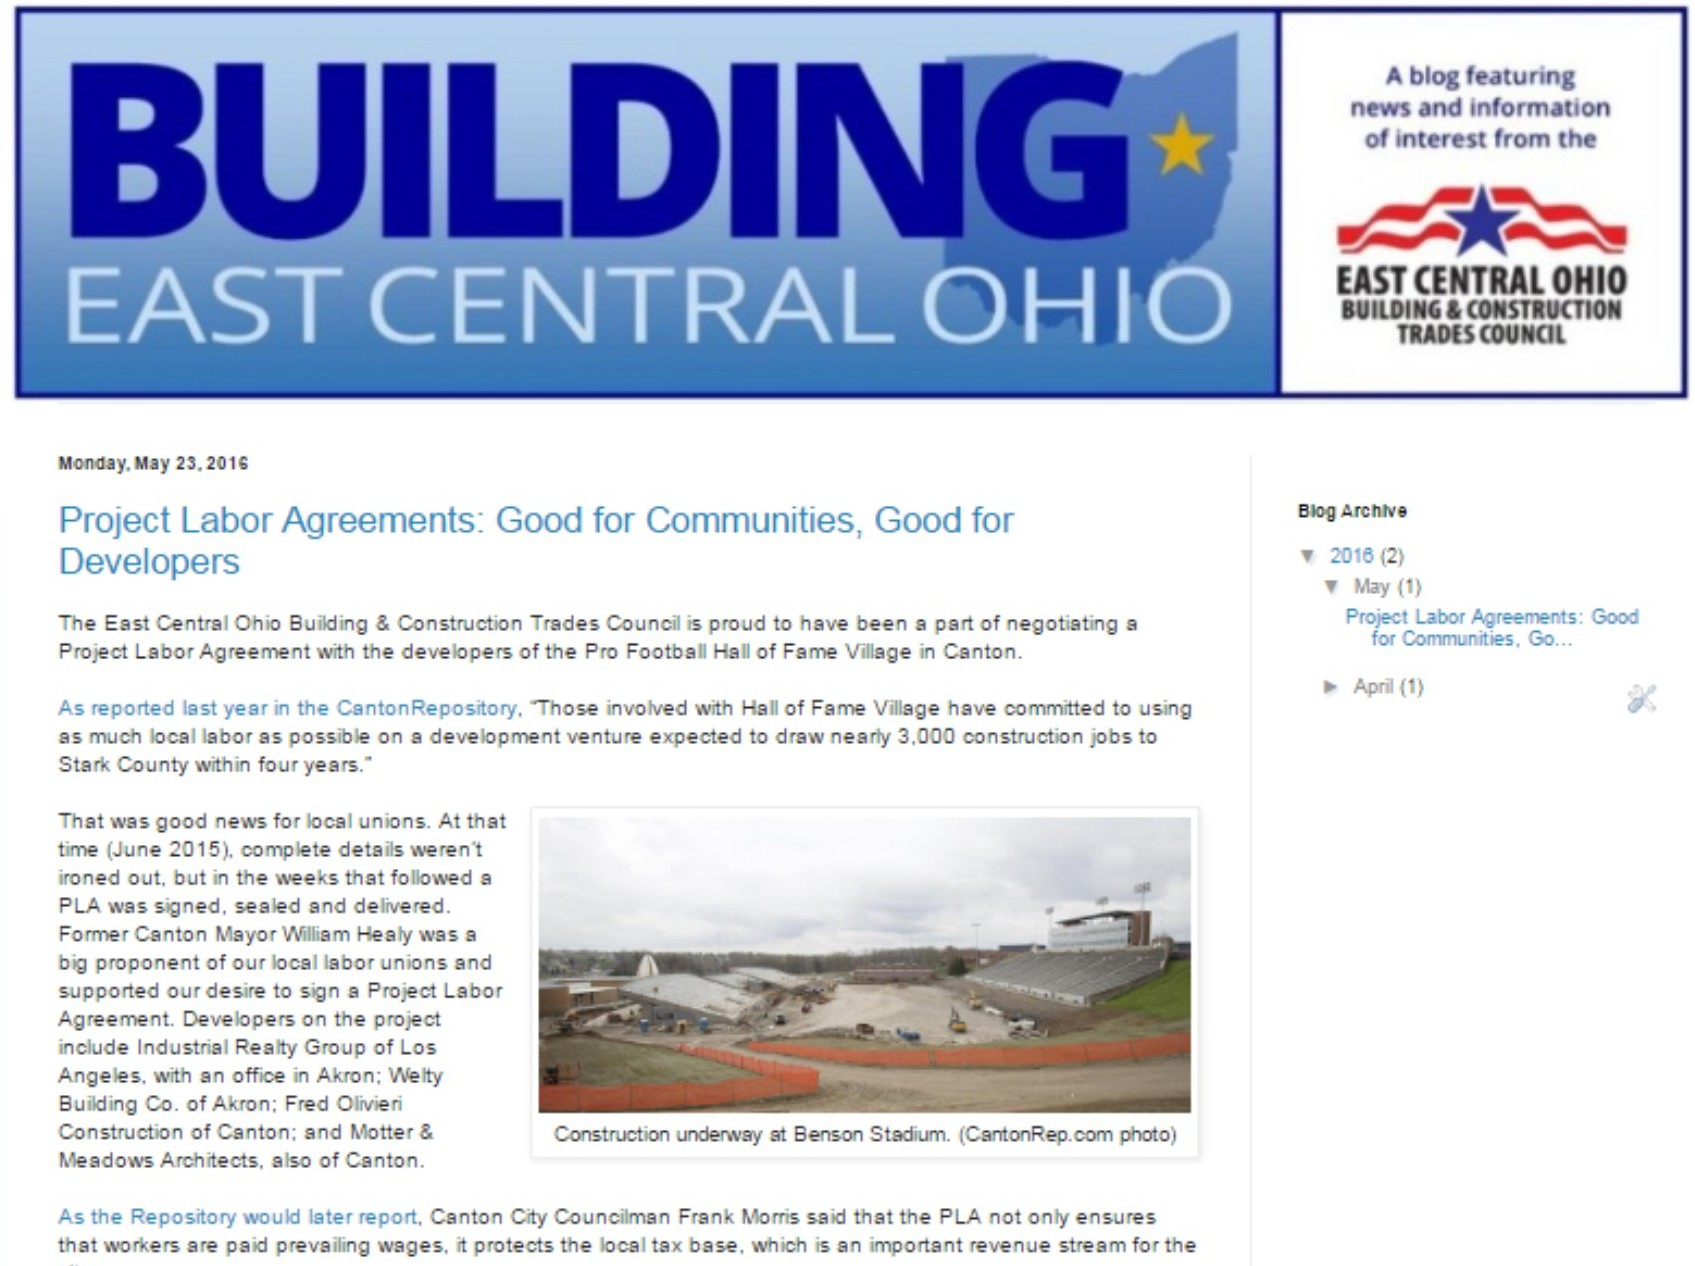 East Central Ohio Building & Construction Trades Council